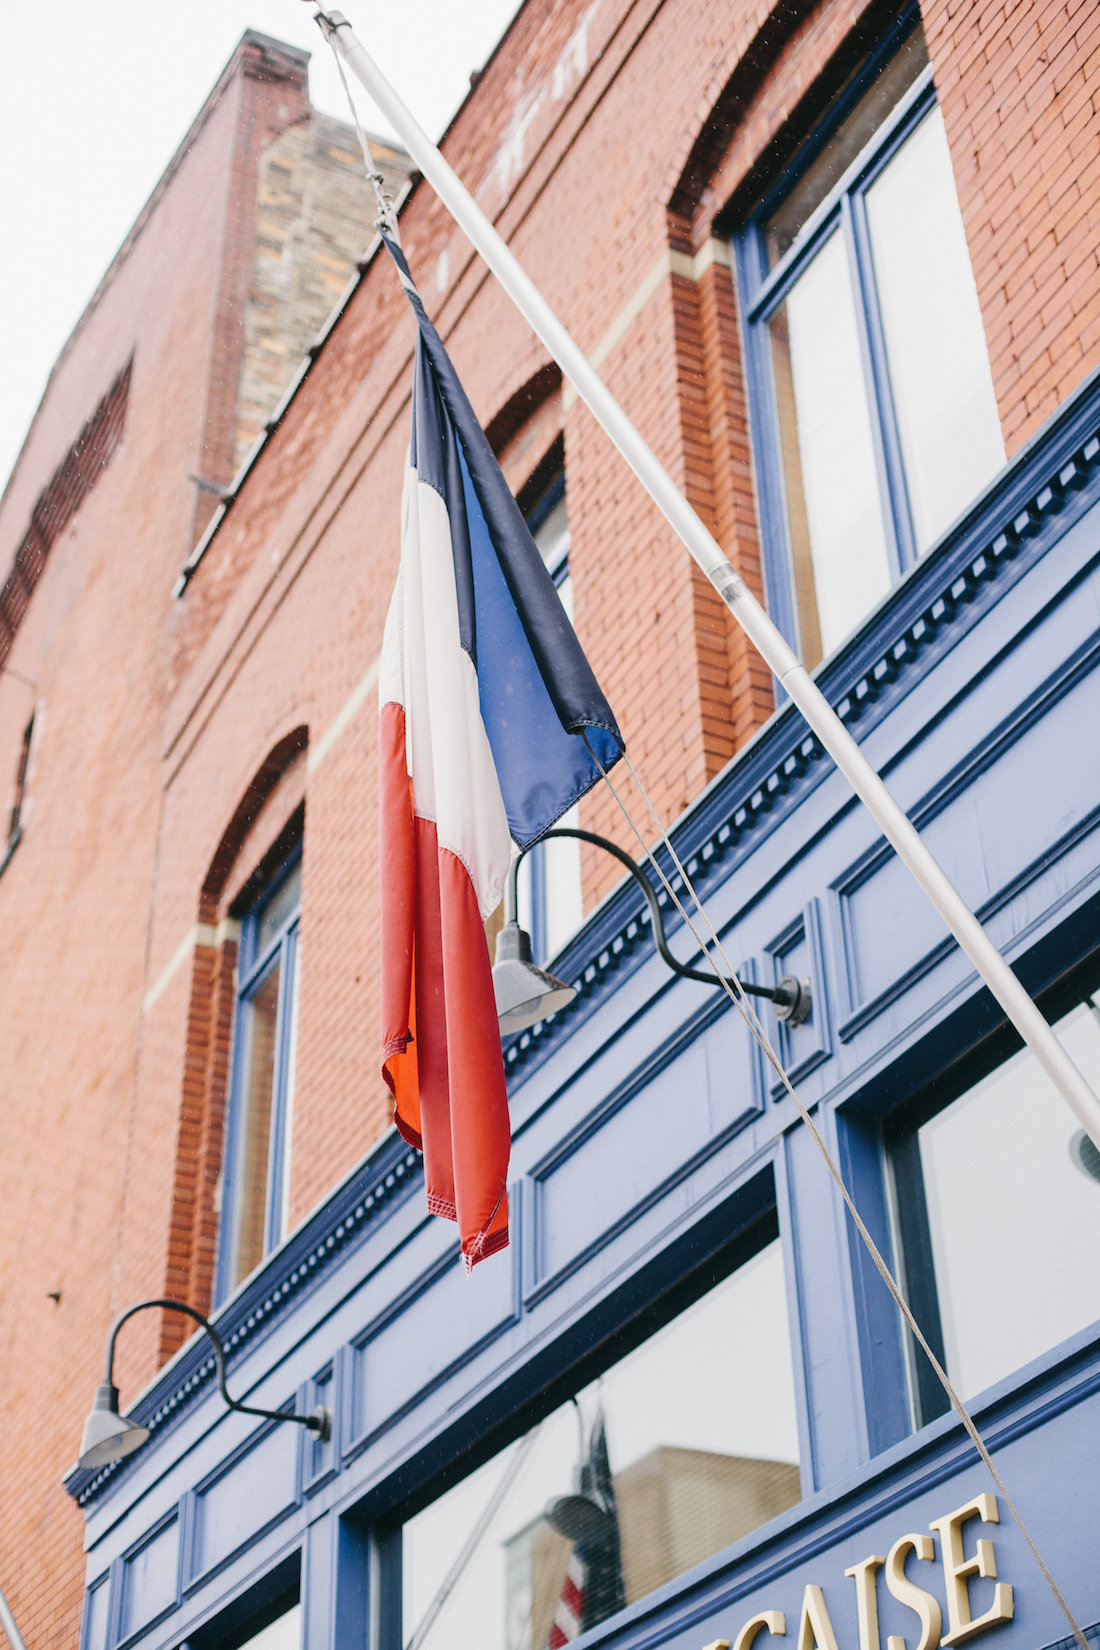 Minneapolis Alliance Francaise.jpg